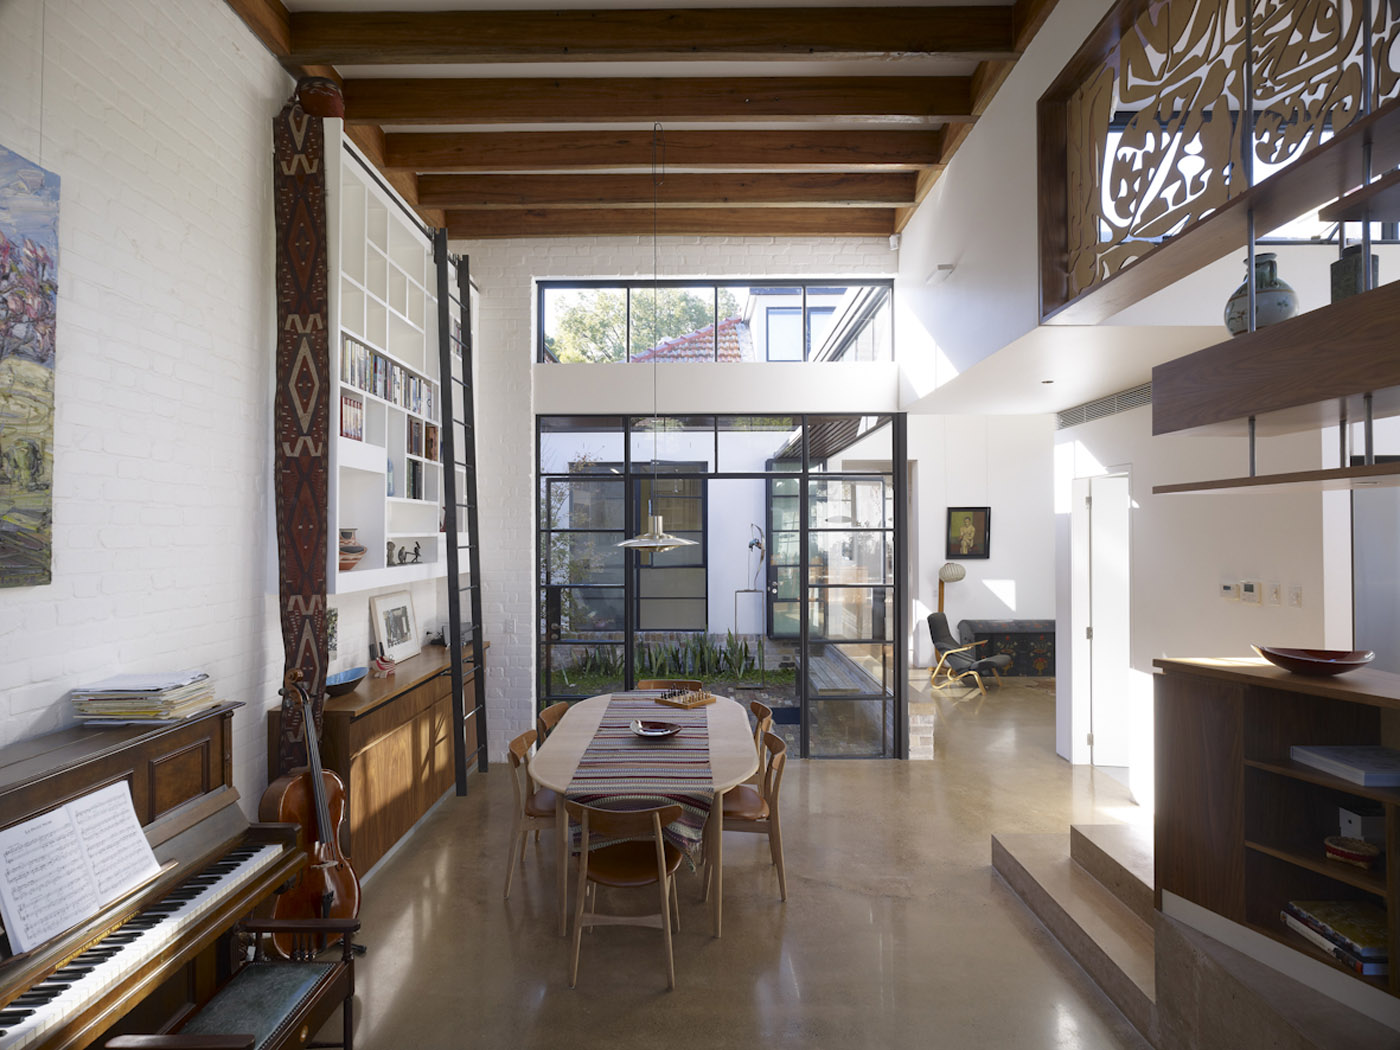 Smee Schoff House by Sam Crawford Architects, view to the light filled white and timber interior with double height ceiling